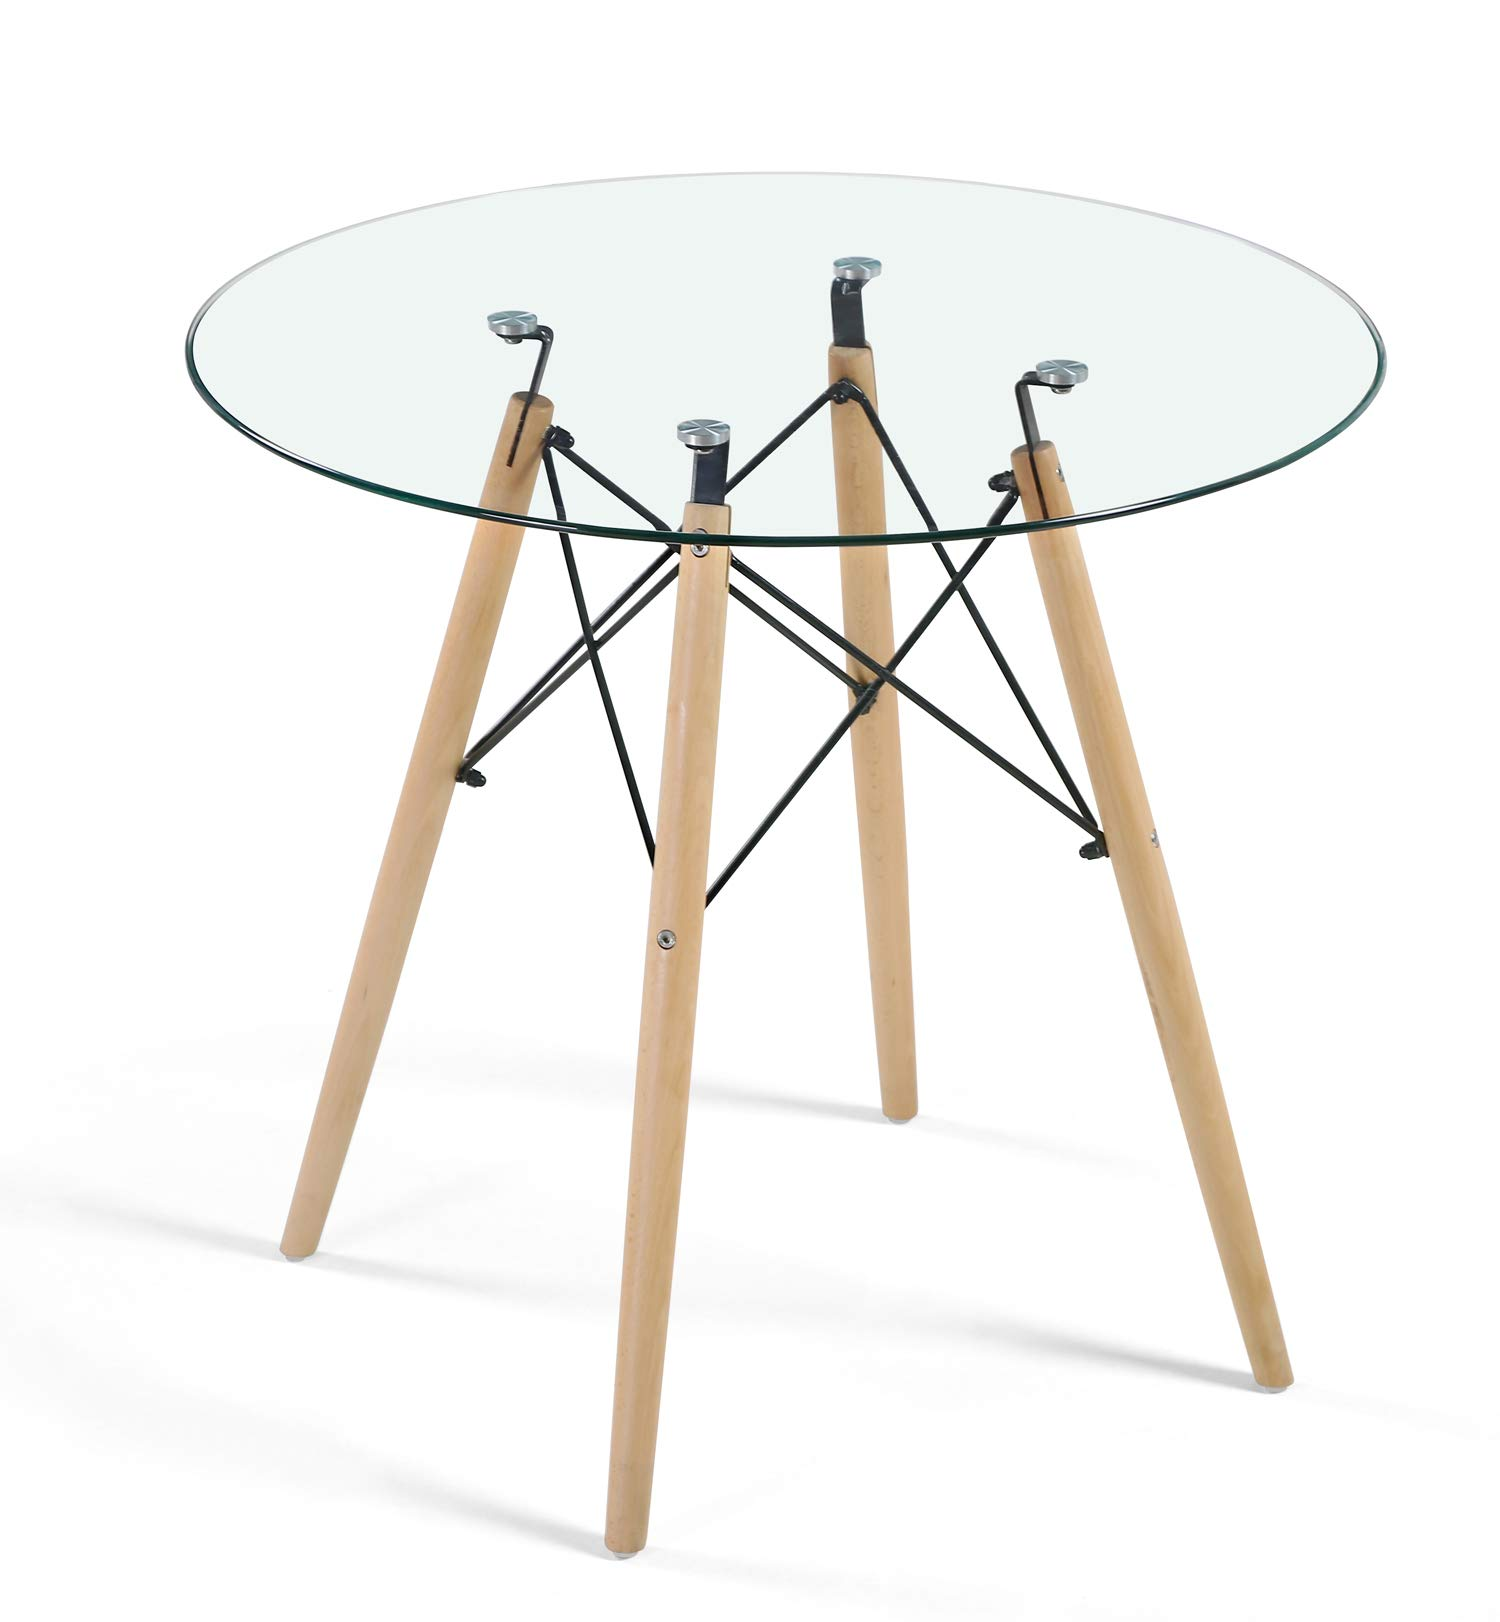 Dining Table Modern Round Glass Clear Table for Kitchen Dining Room Coffee Leisure Table with Wood Legs... by Hyhome